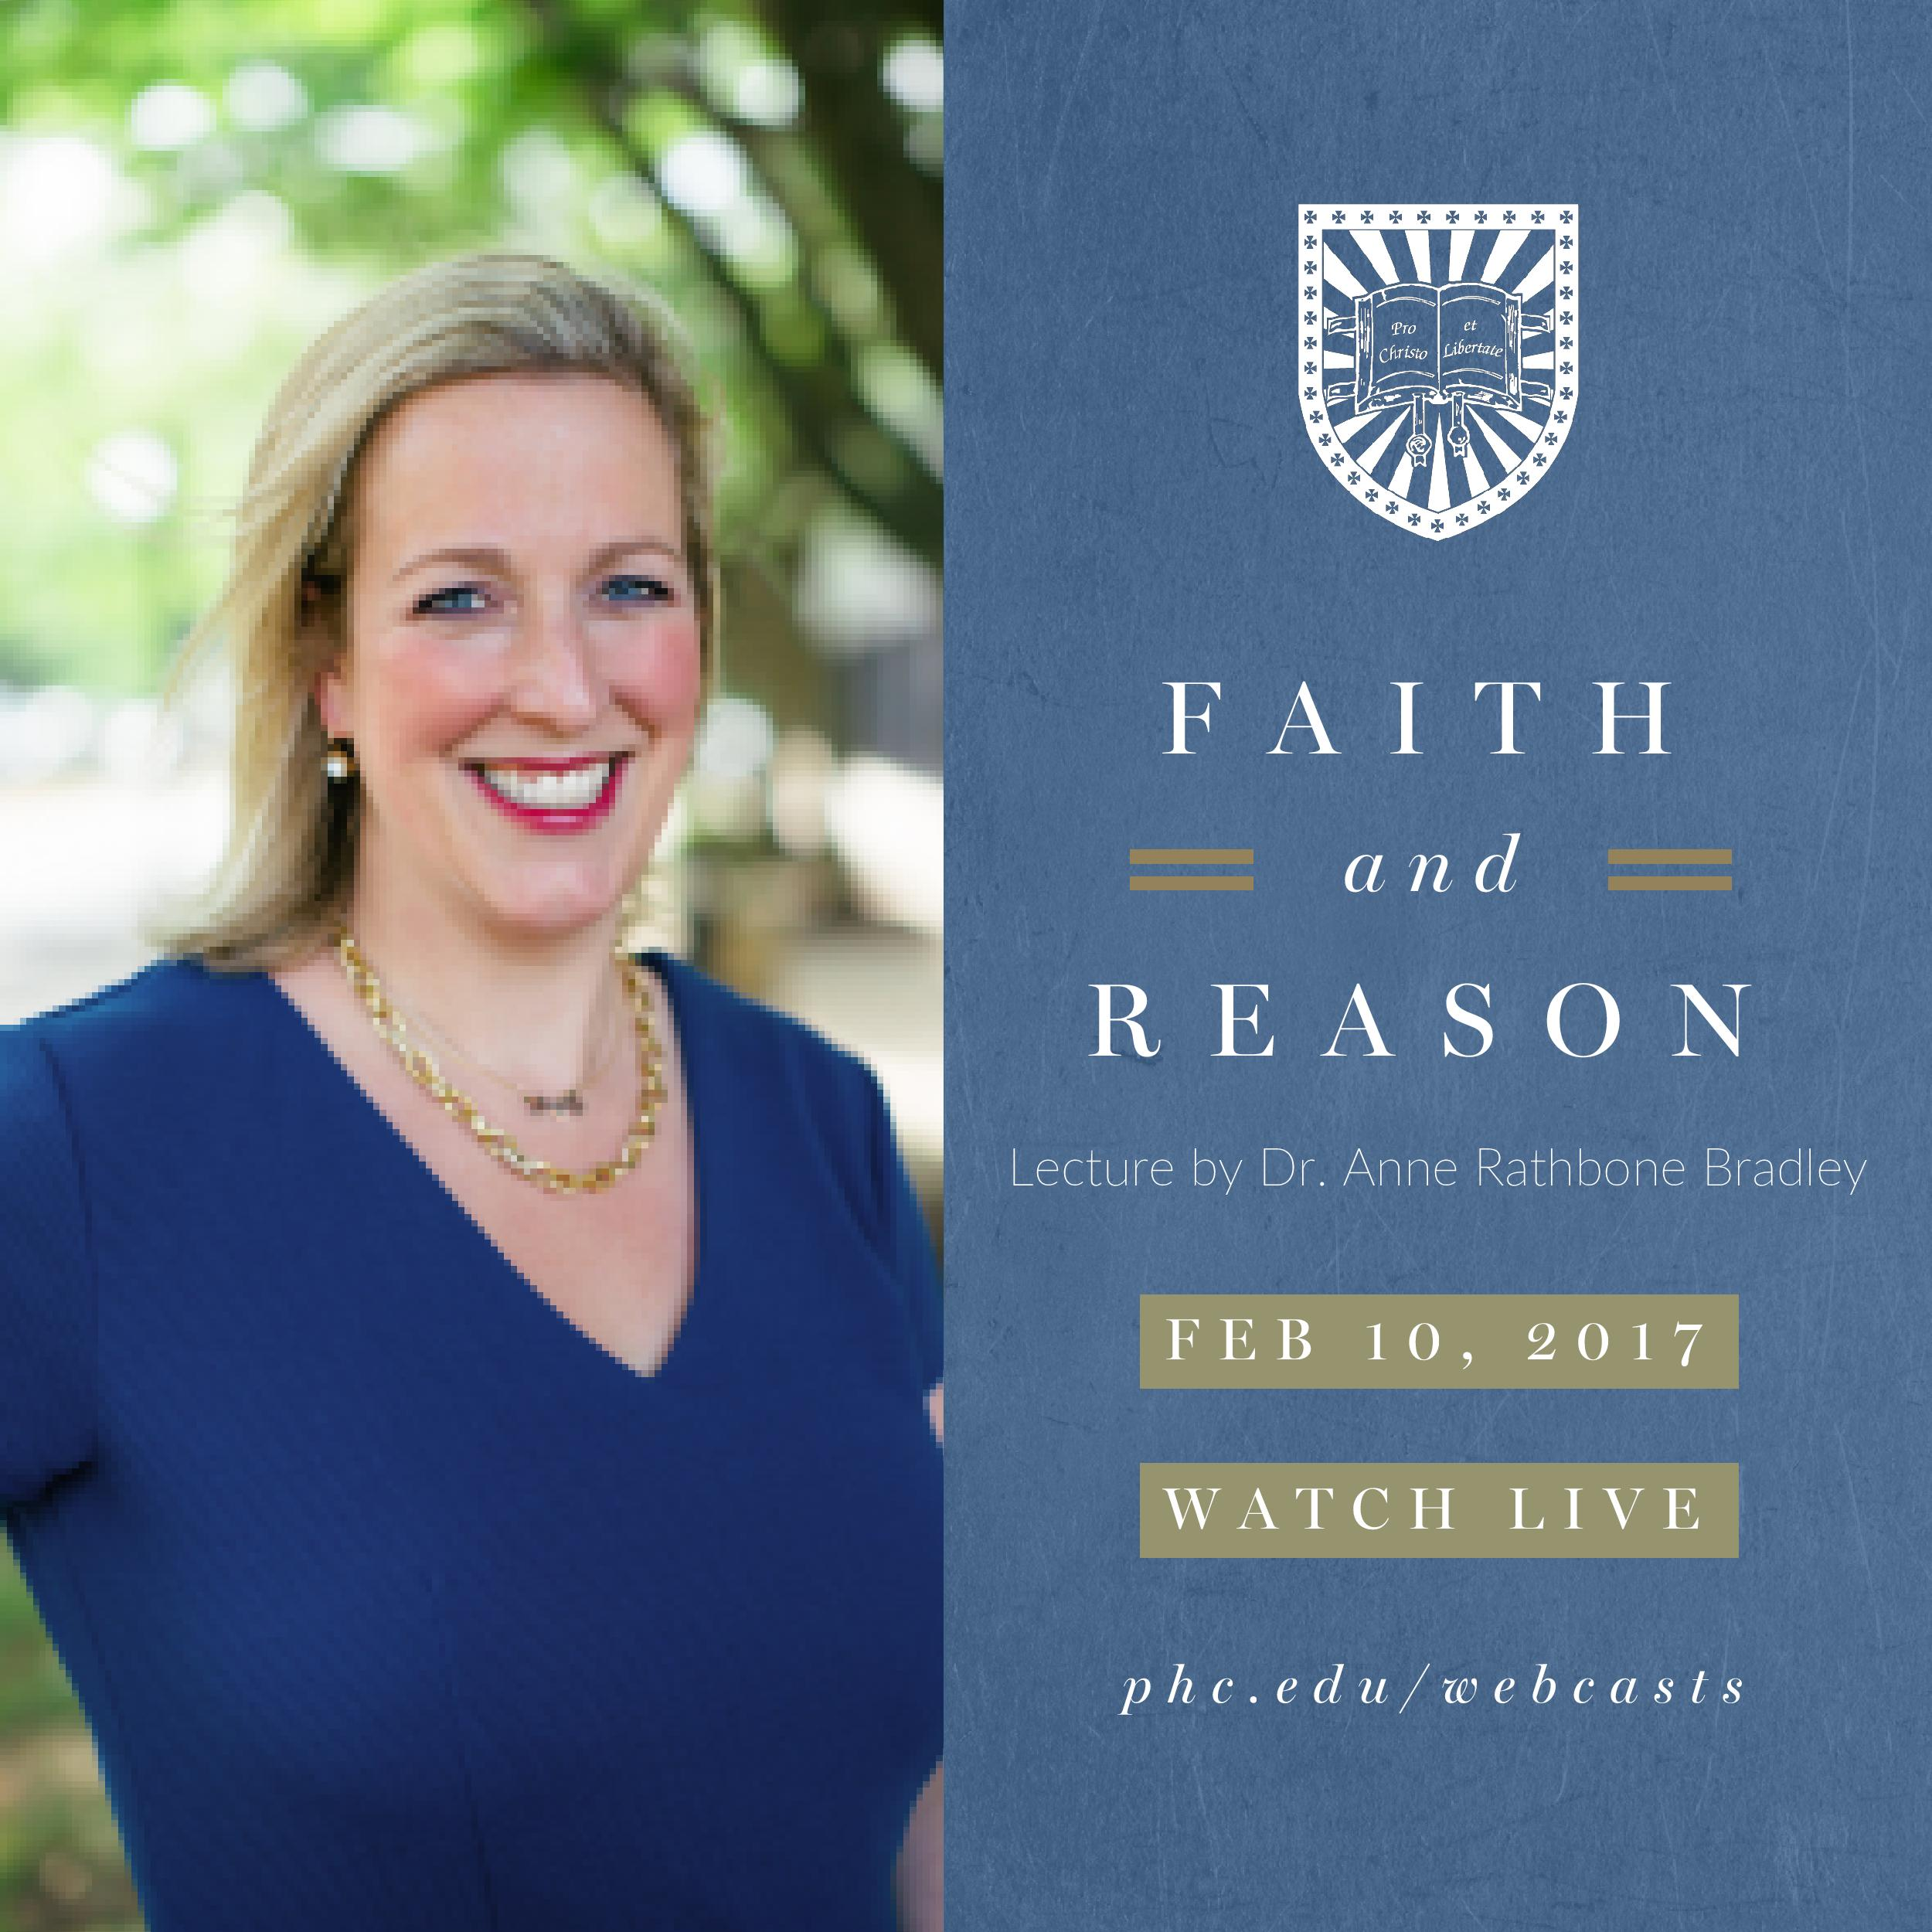 Patrick Henry College (PHC) Faith and Reason spring 2017 lecture by Dr. Anne Rathbone Bradley